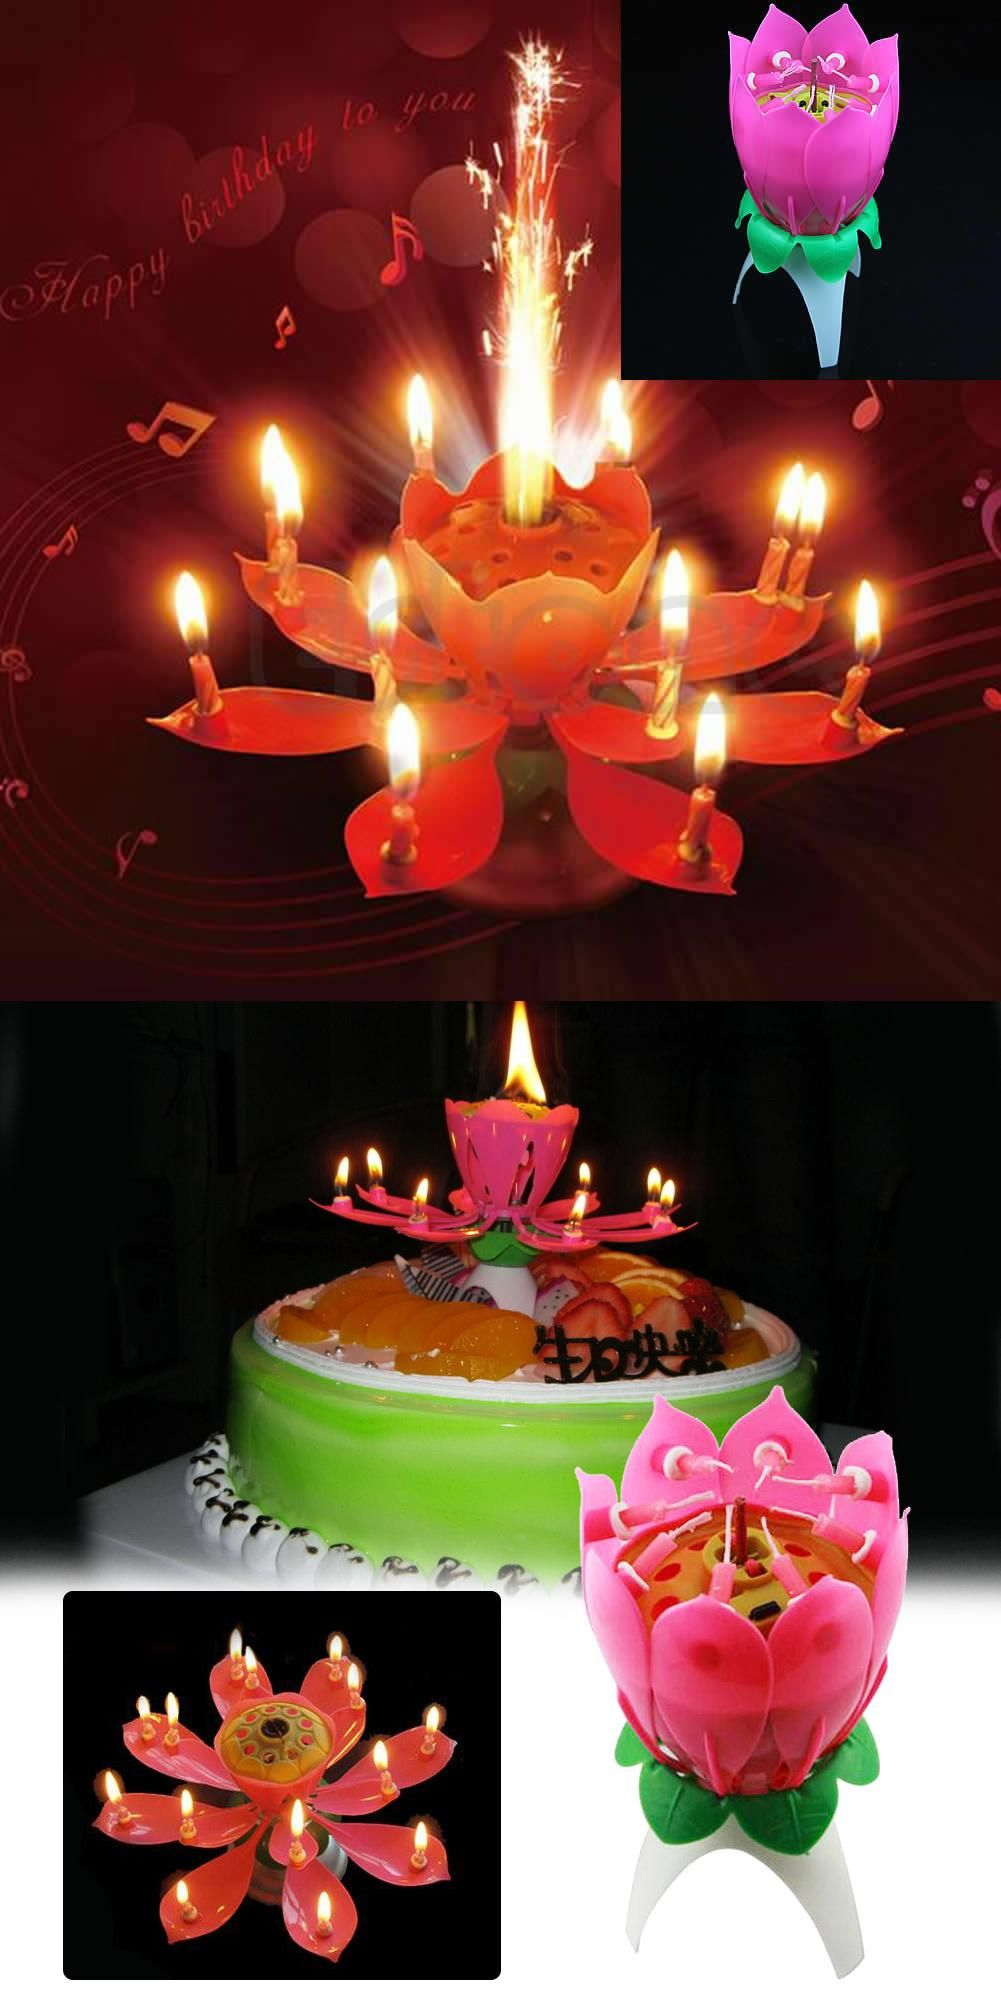 Astonishing Lotus Candle Lamp Musical Candles For Birthday Cake Party Supply Personalised Birthday Cards Veneteletsinfo